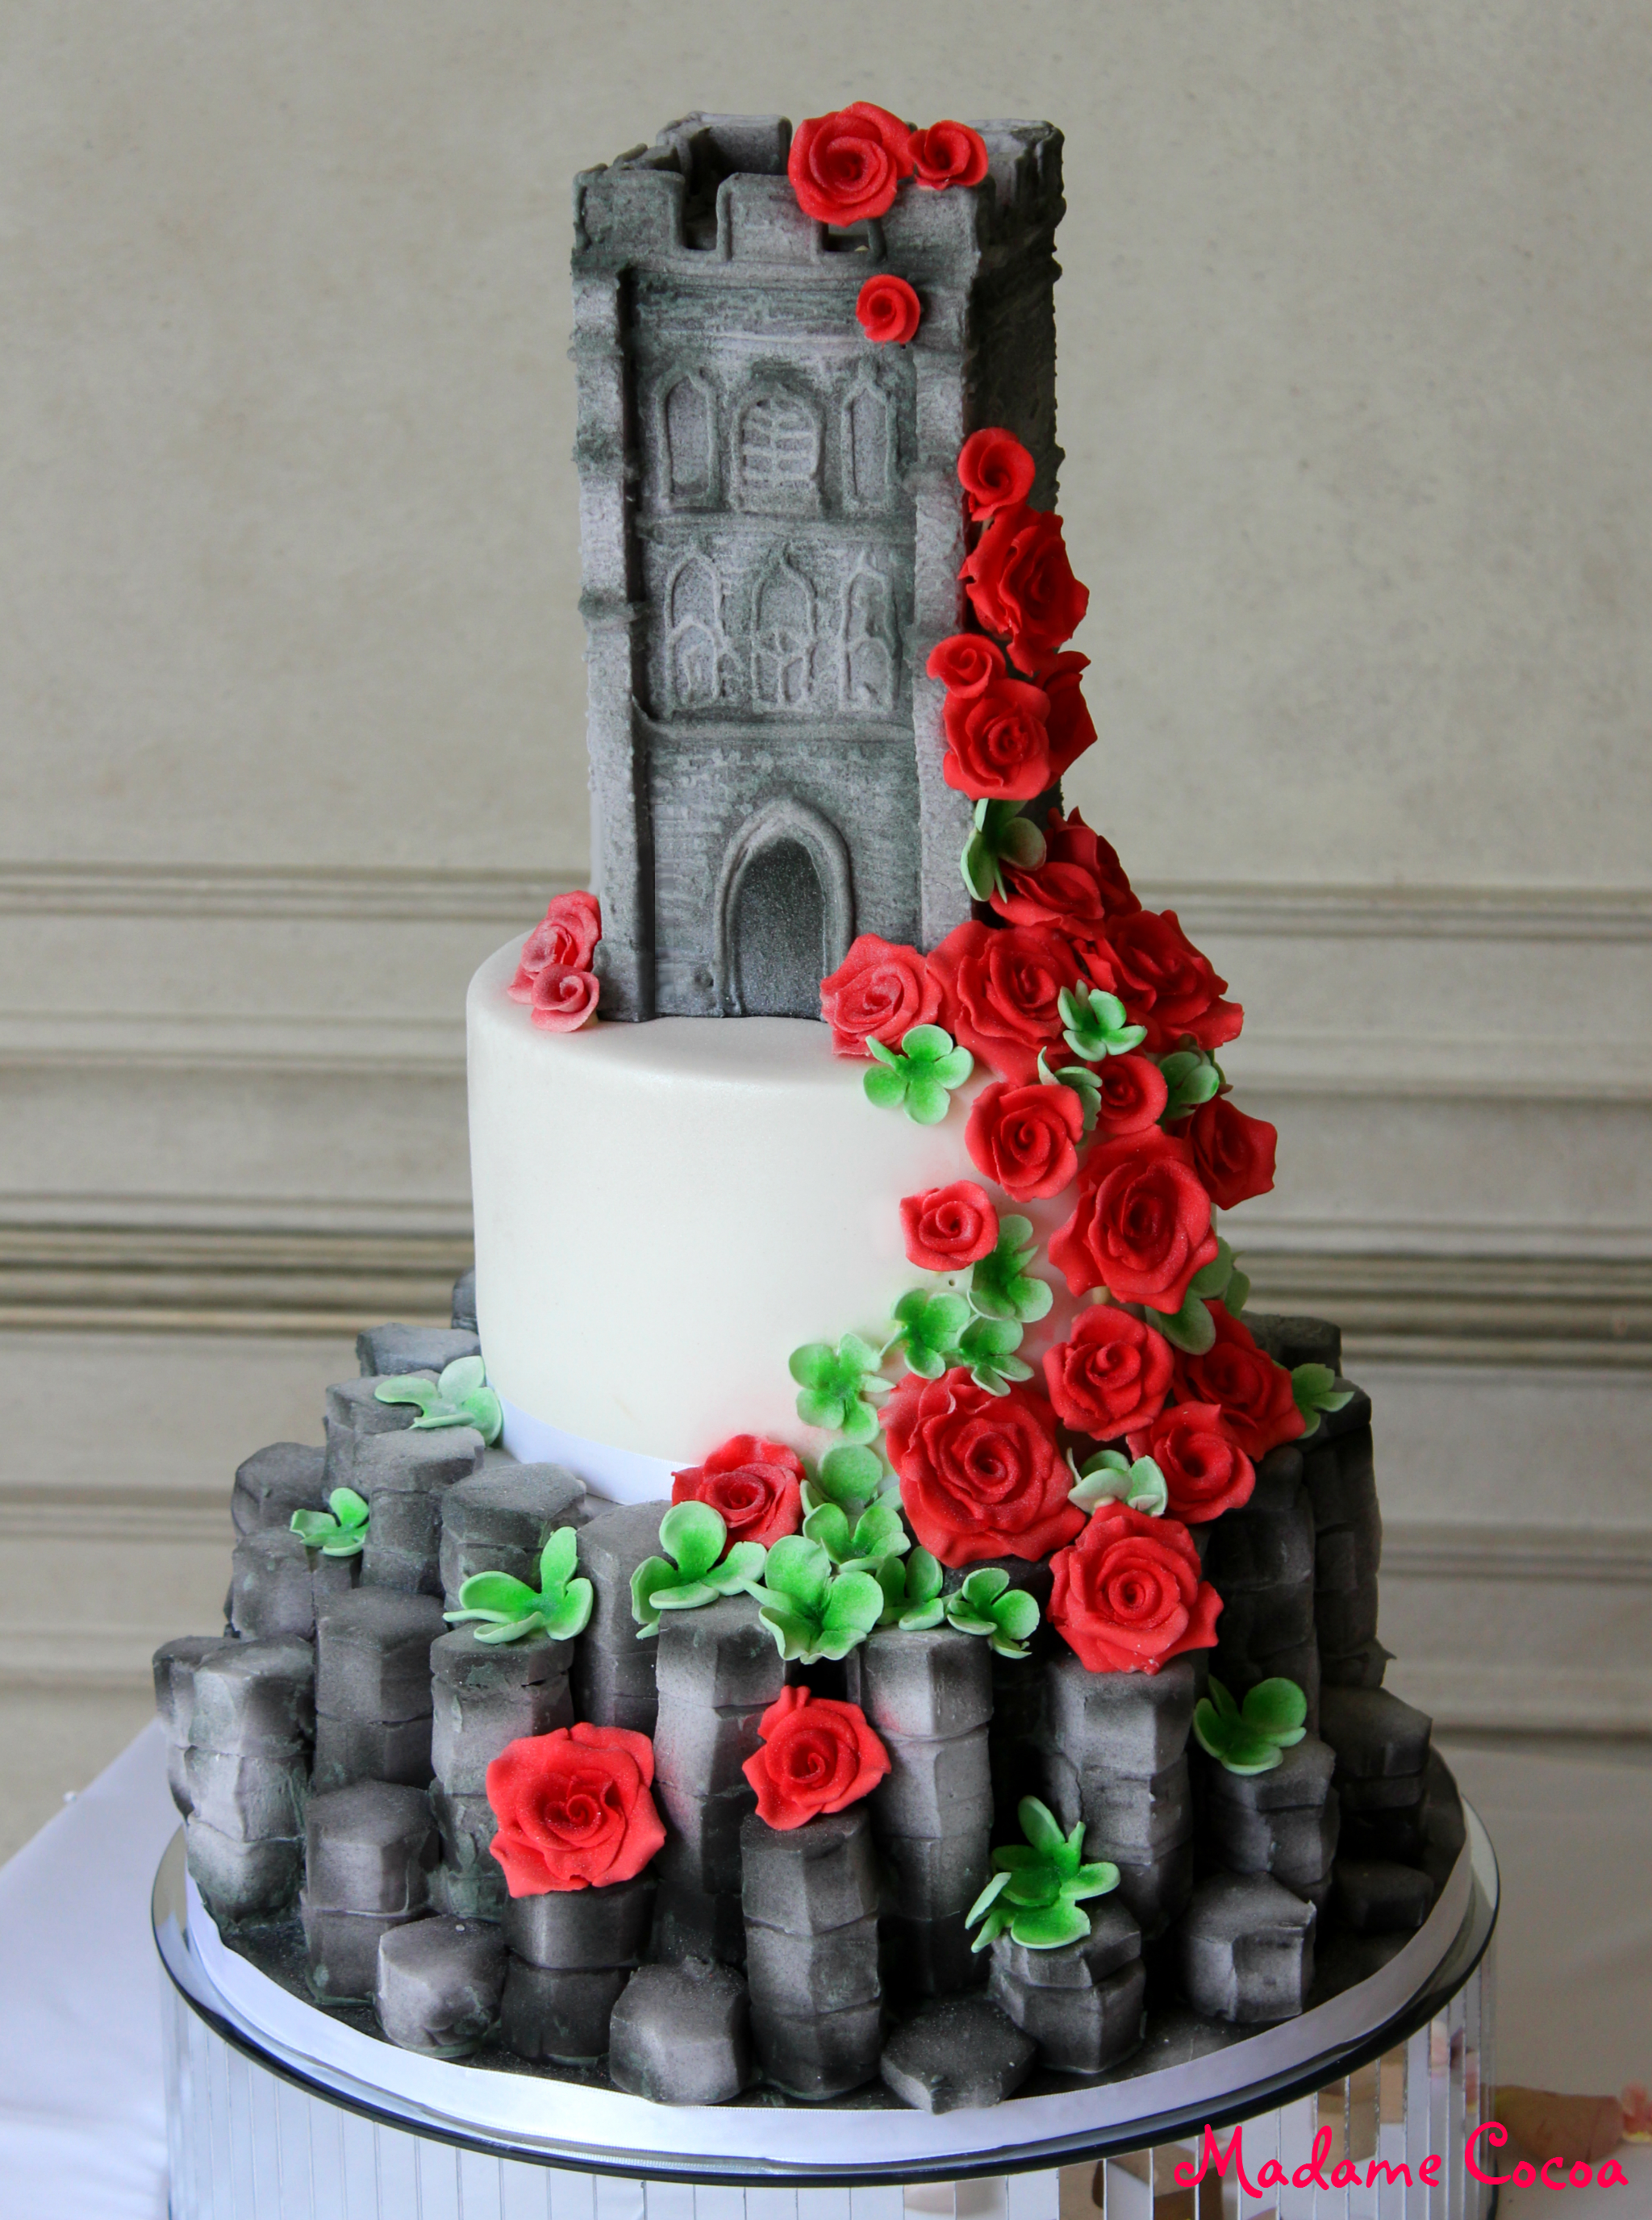 Belfast/Glastonbury wedding cake